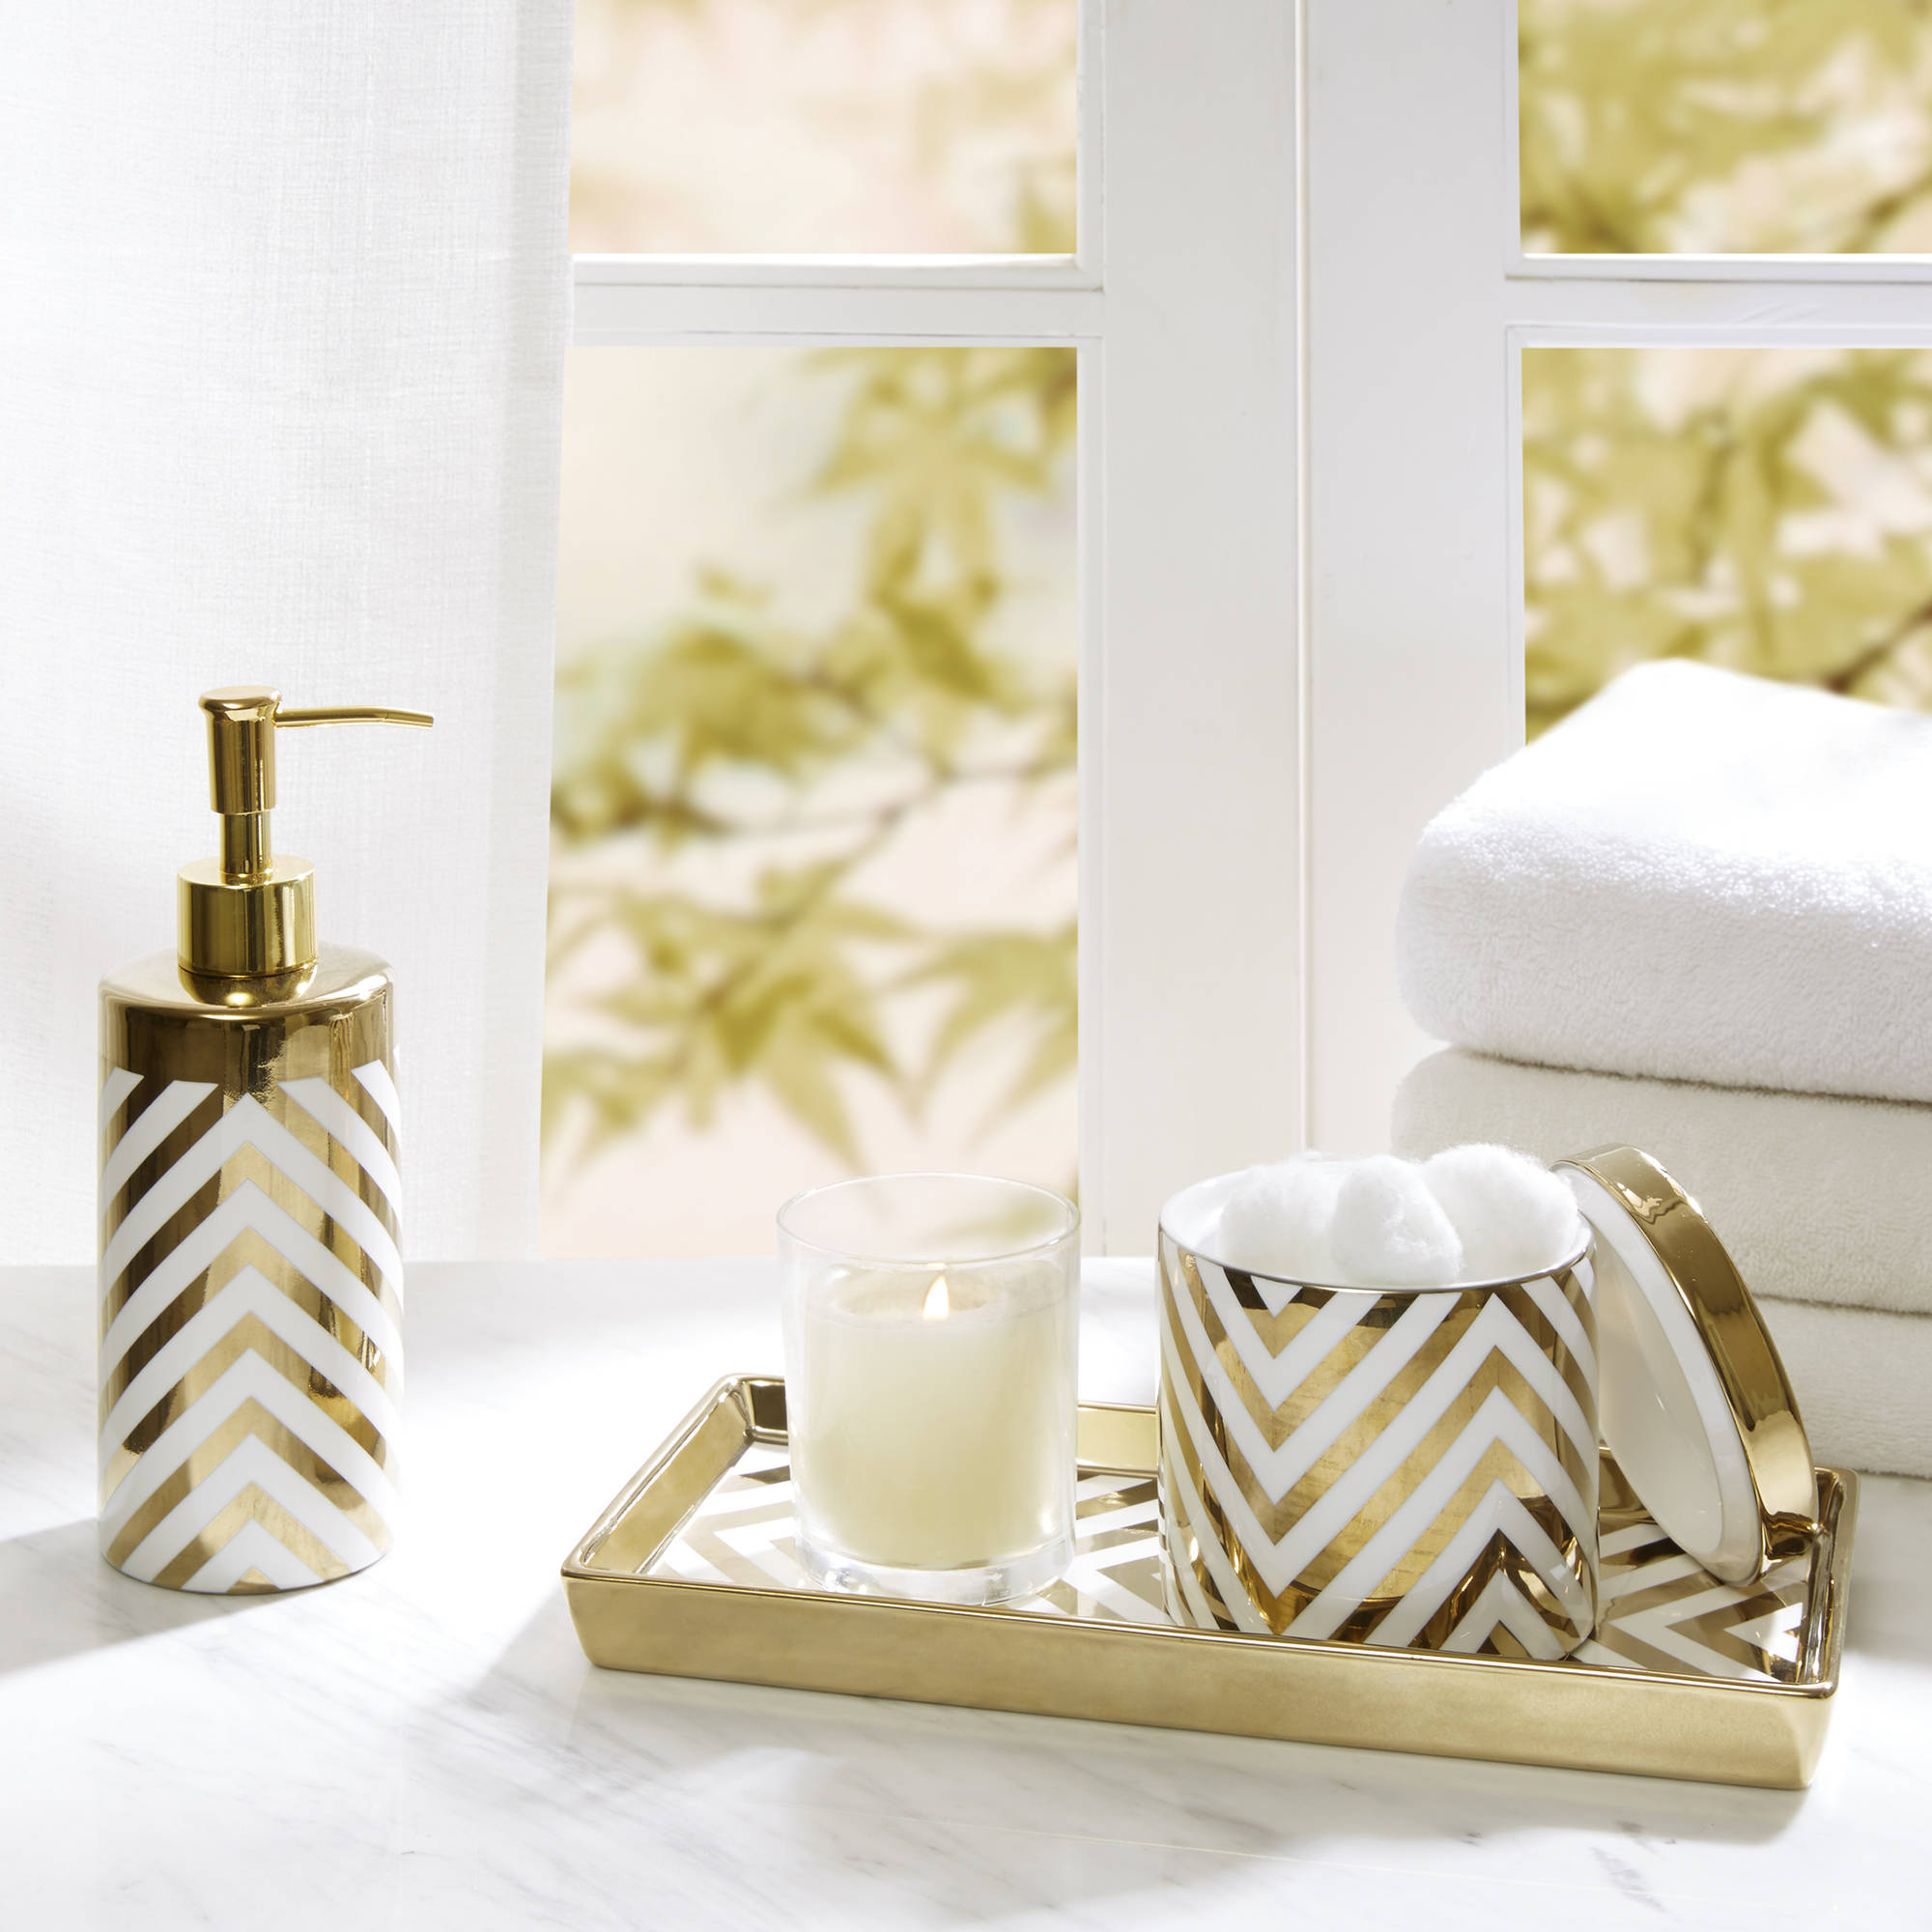 Home Essence Gold Chevron Ceramic Bath Accessory Set by E&E Co.